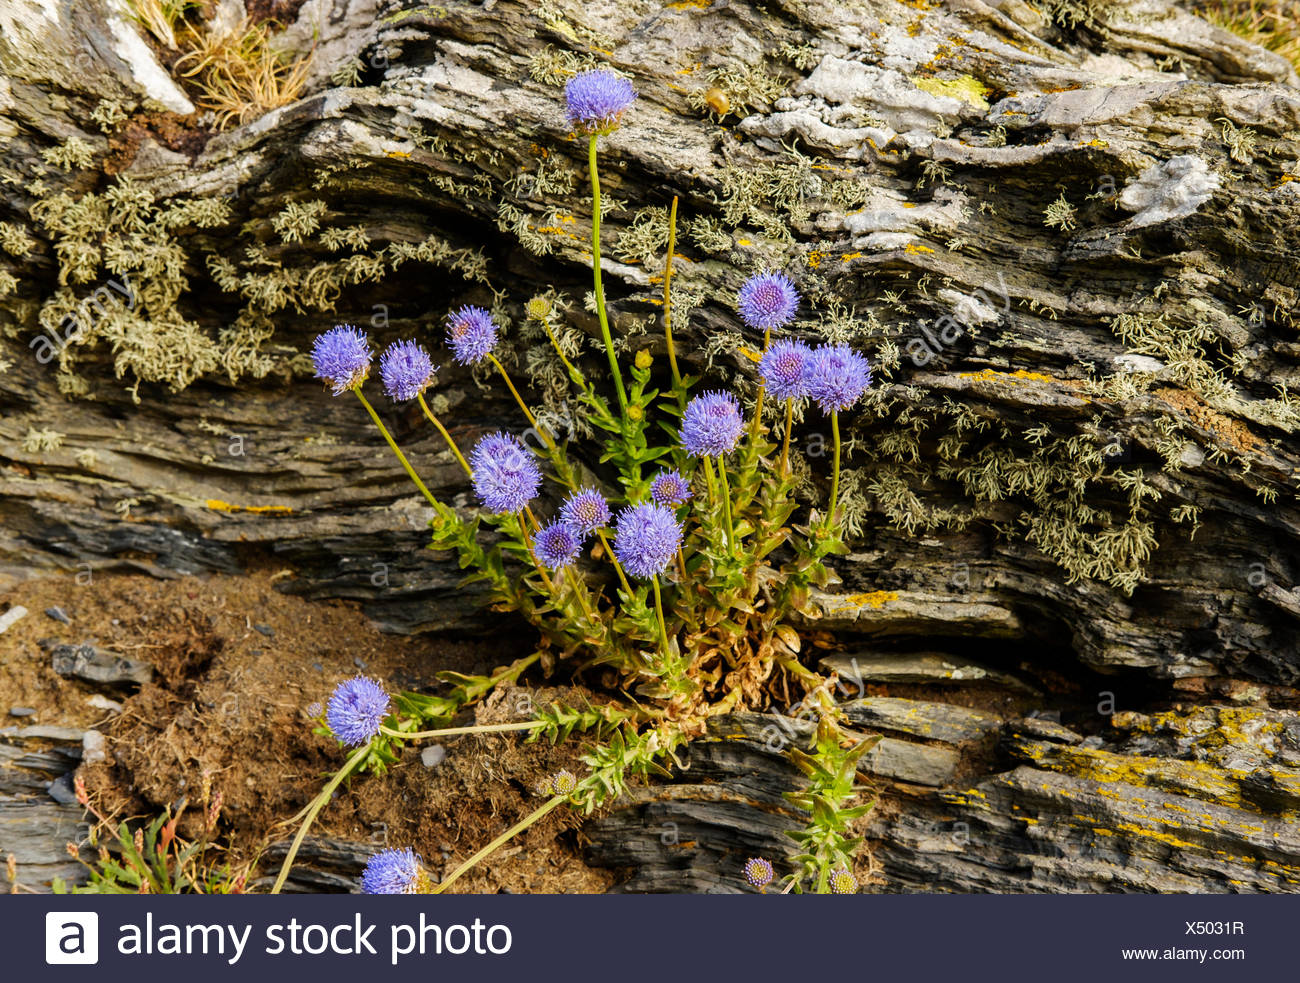 Sheep's bit scabiouses (Jasione montana), on slate, Cornwall, England, Great Britain - Stock Image